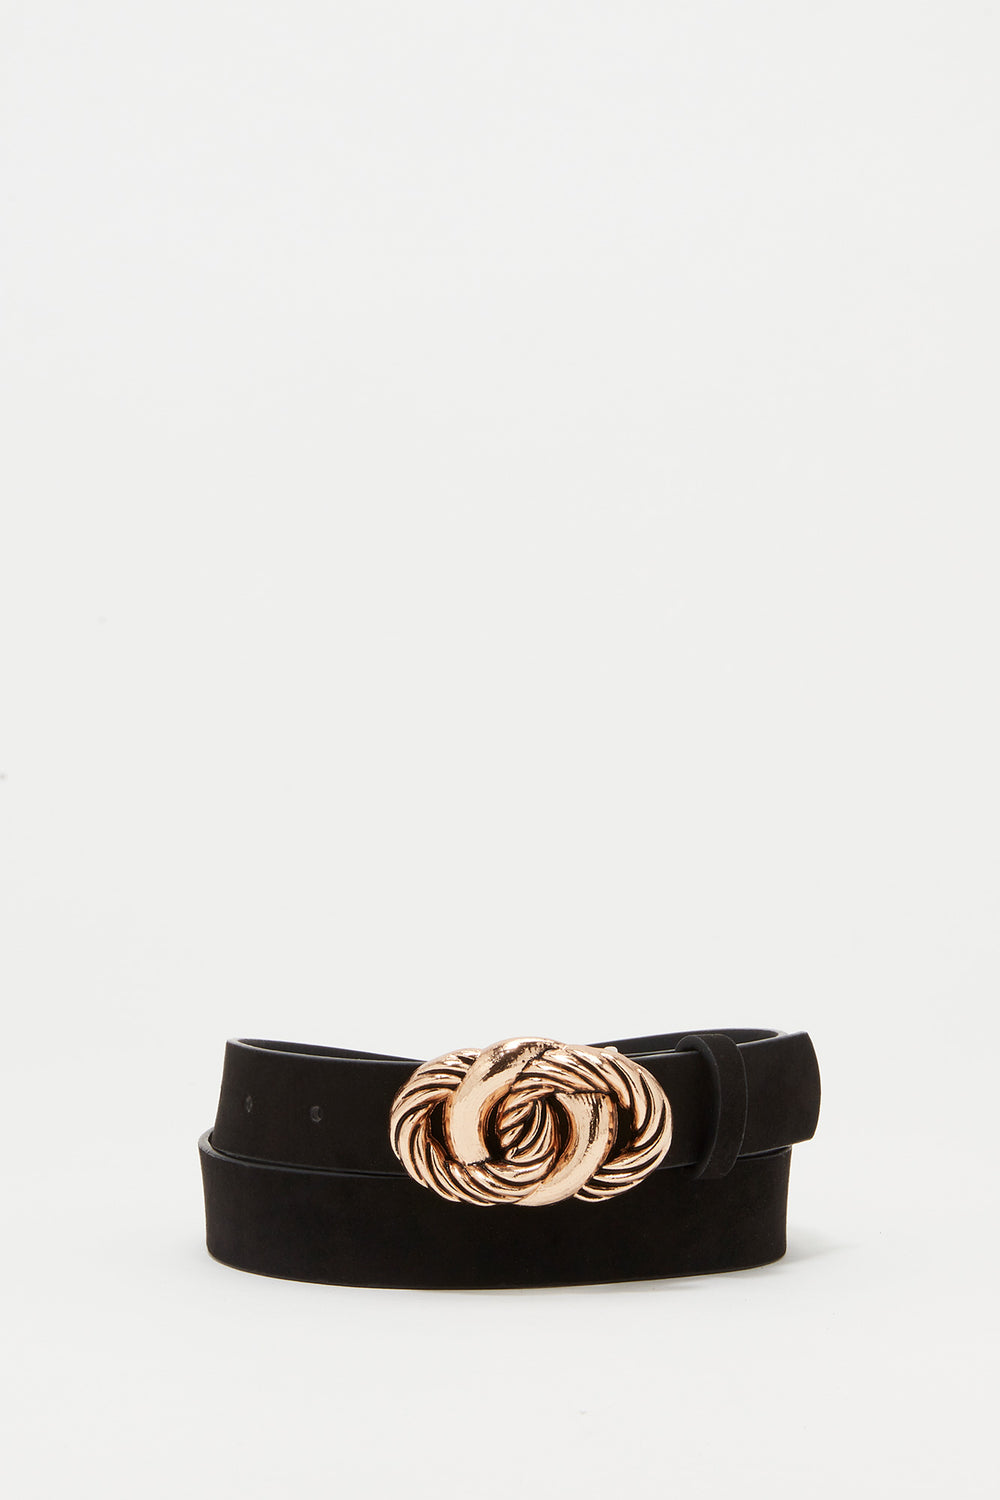 Knotted Buckle Faux-Leather Belt Black